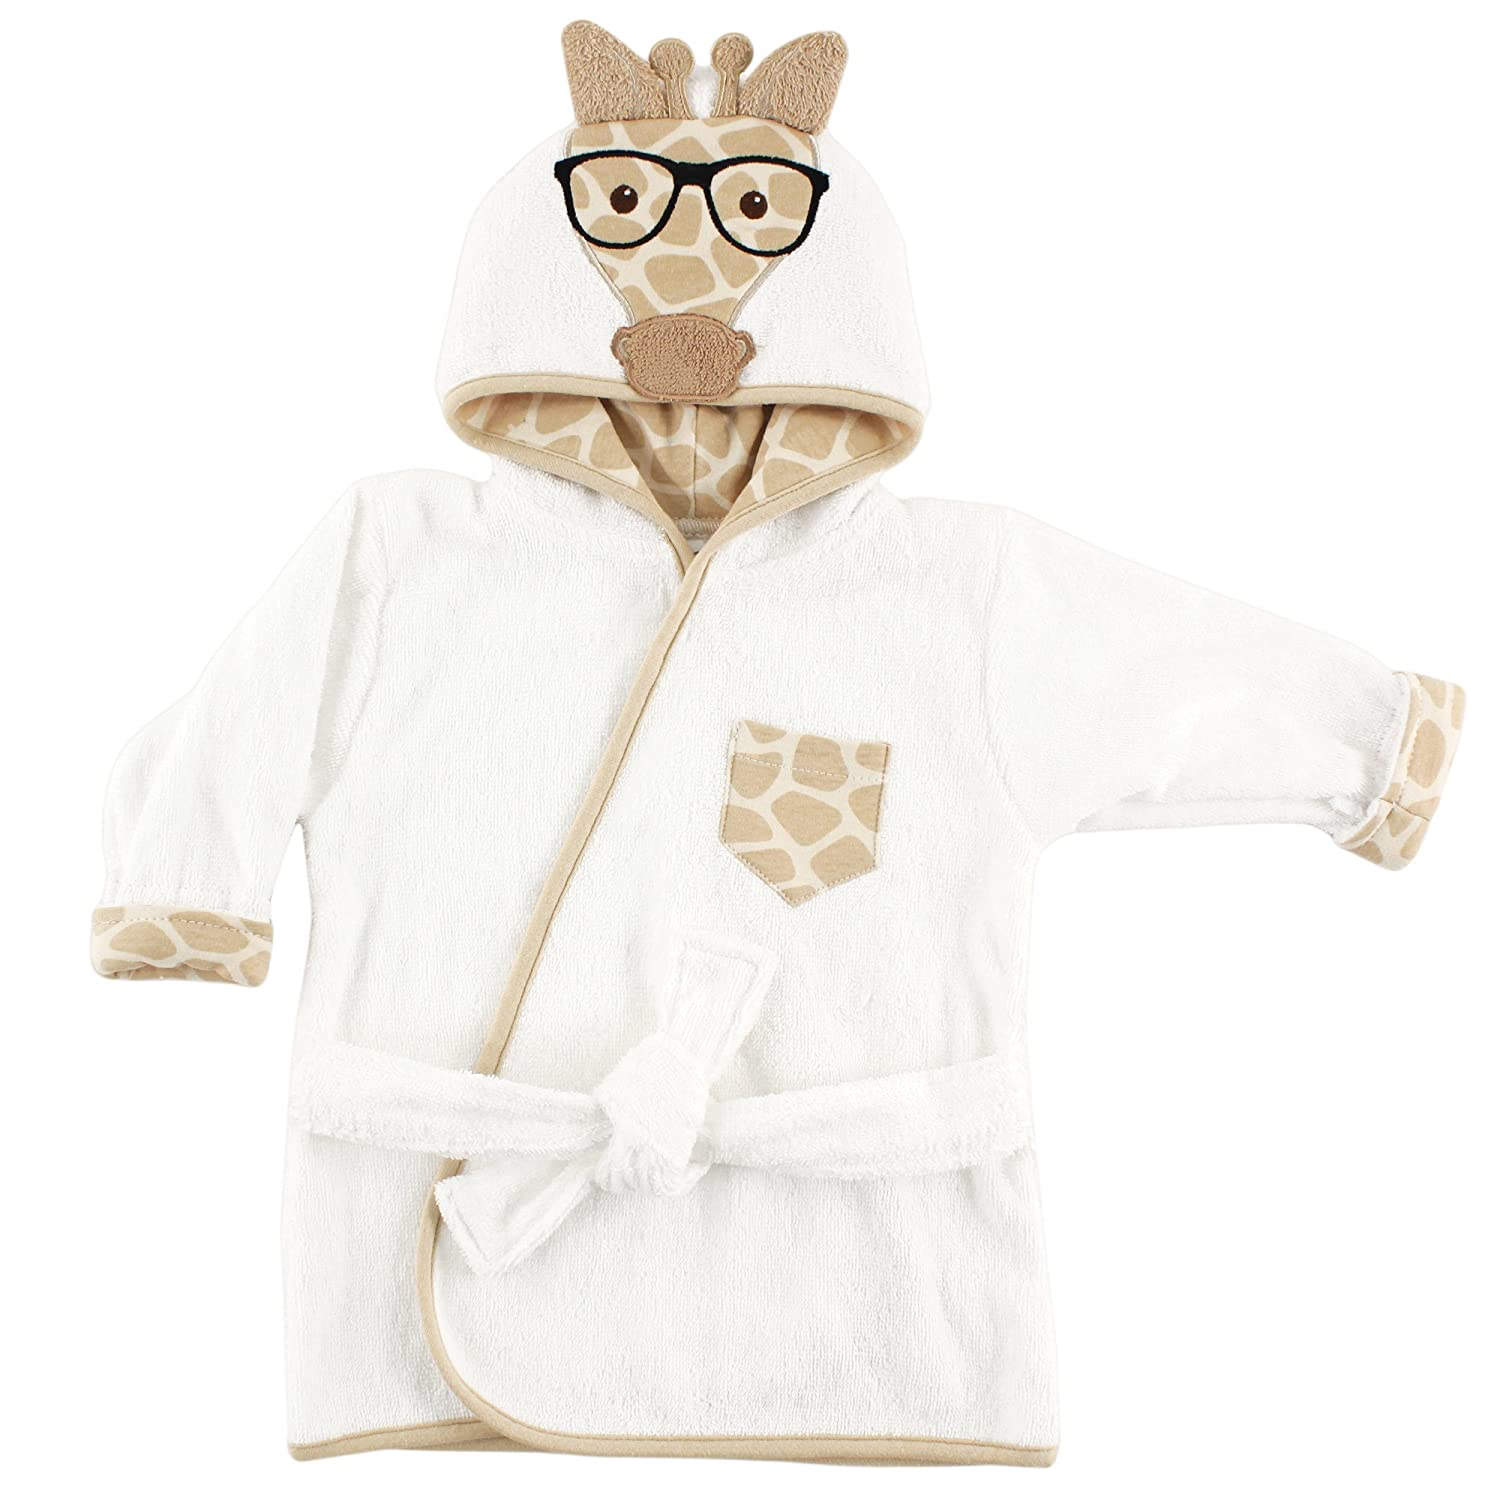 Hudson Baby Unisex Baby Cotton Animal Face Bathrobe, Nerdy Giraffe, One Size